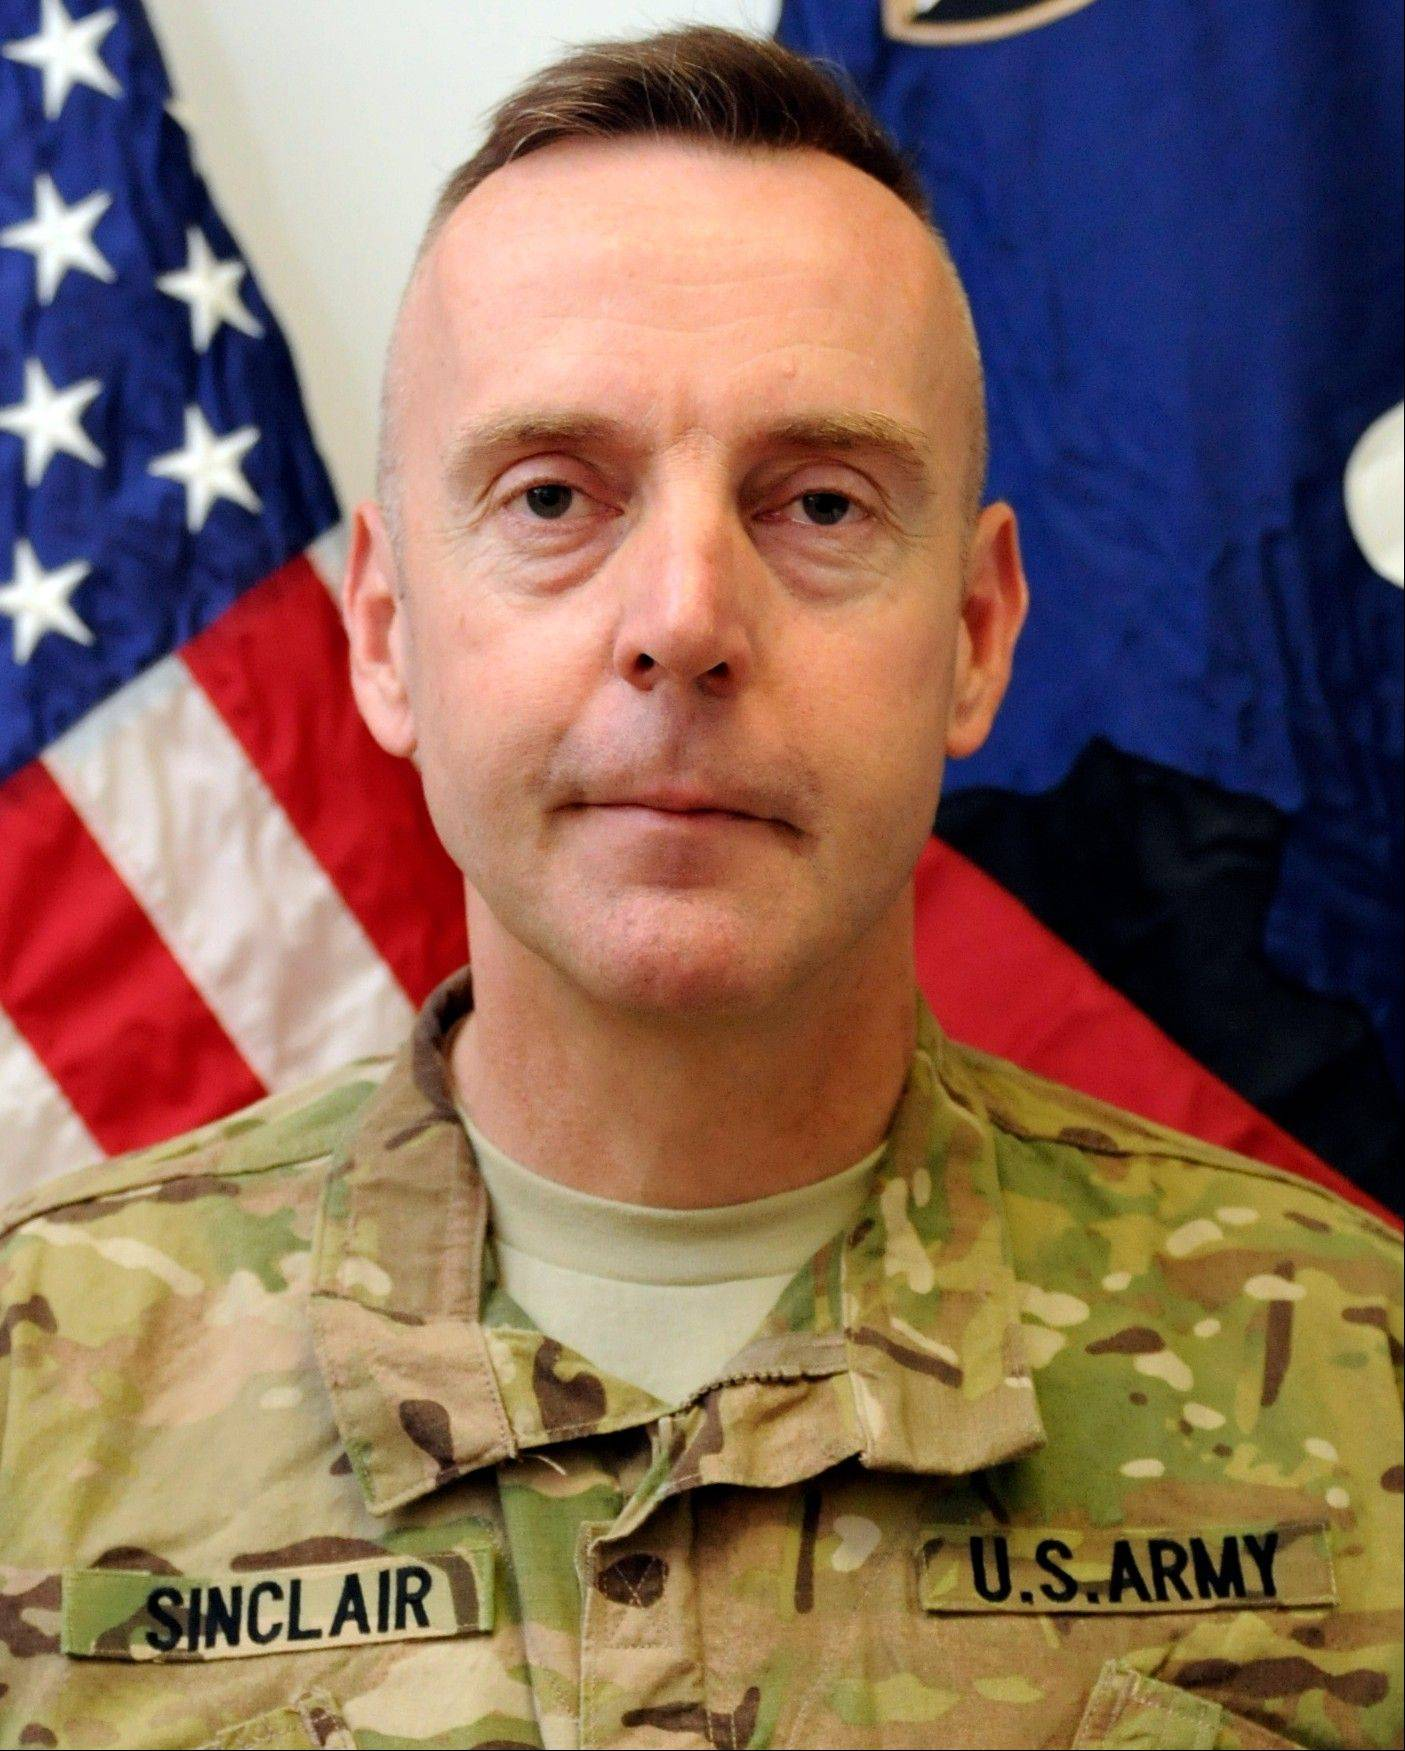 Brig. Gen. Jeffrey A. Sinclair, who served five combat tours in Iraq and Afghanistan, has been charged with forcible sodomy, multiple counts of adultery and having inappropriate relationships with several female subordinates.